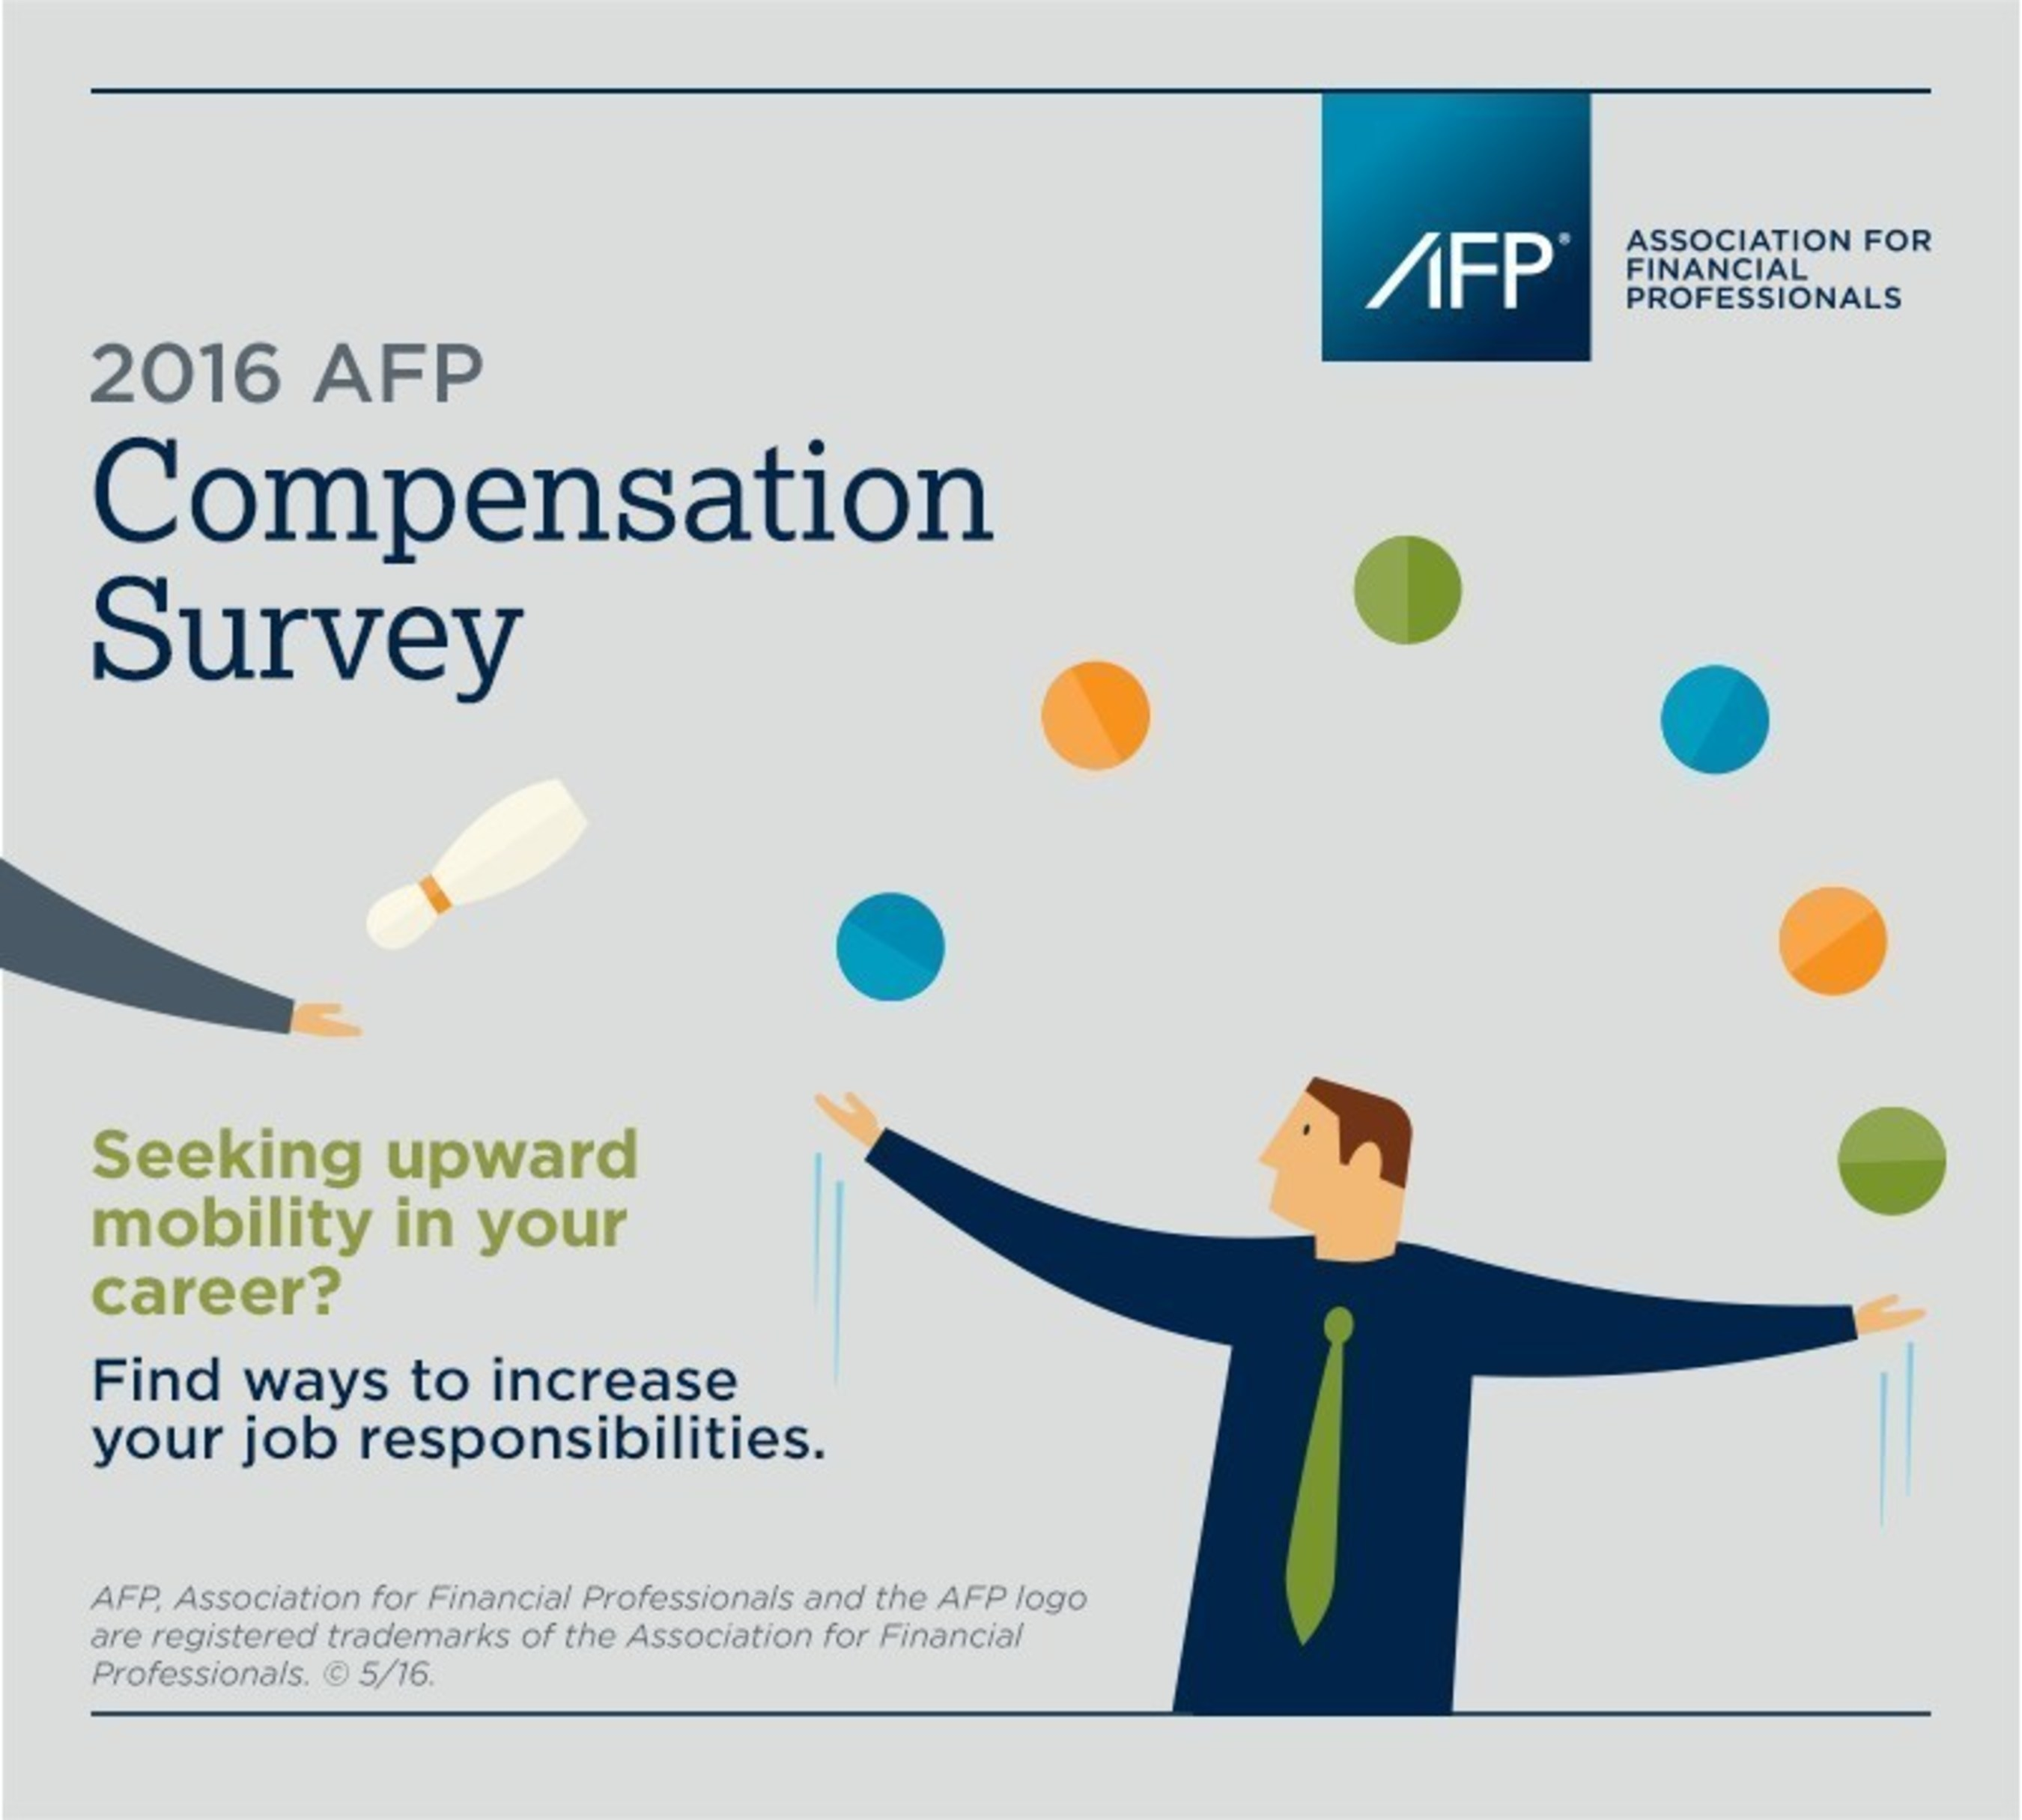 2016 AFP Compensation Survey found raises increased slightly less than in the prior year, and that finance professionals must develop critical leadership skills to be successful in their careers. Full results are available at http://www.afponline.org/CompReport/.